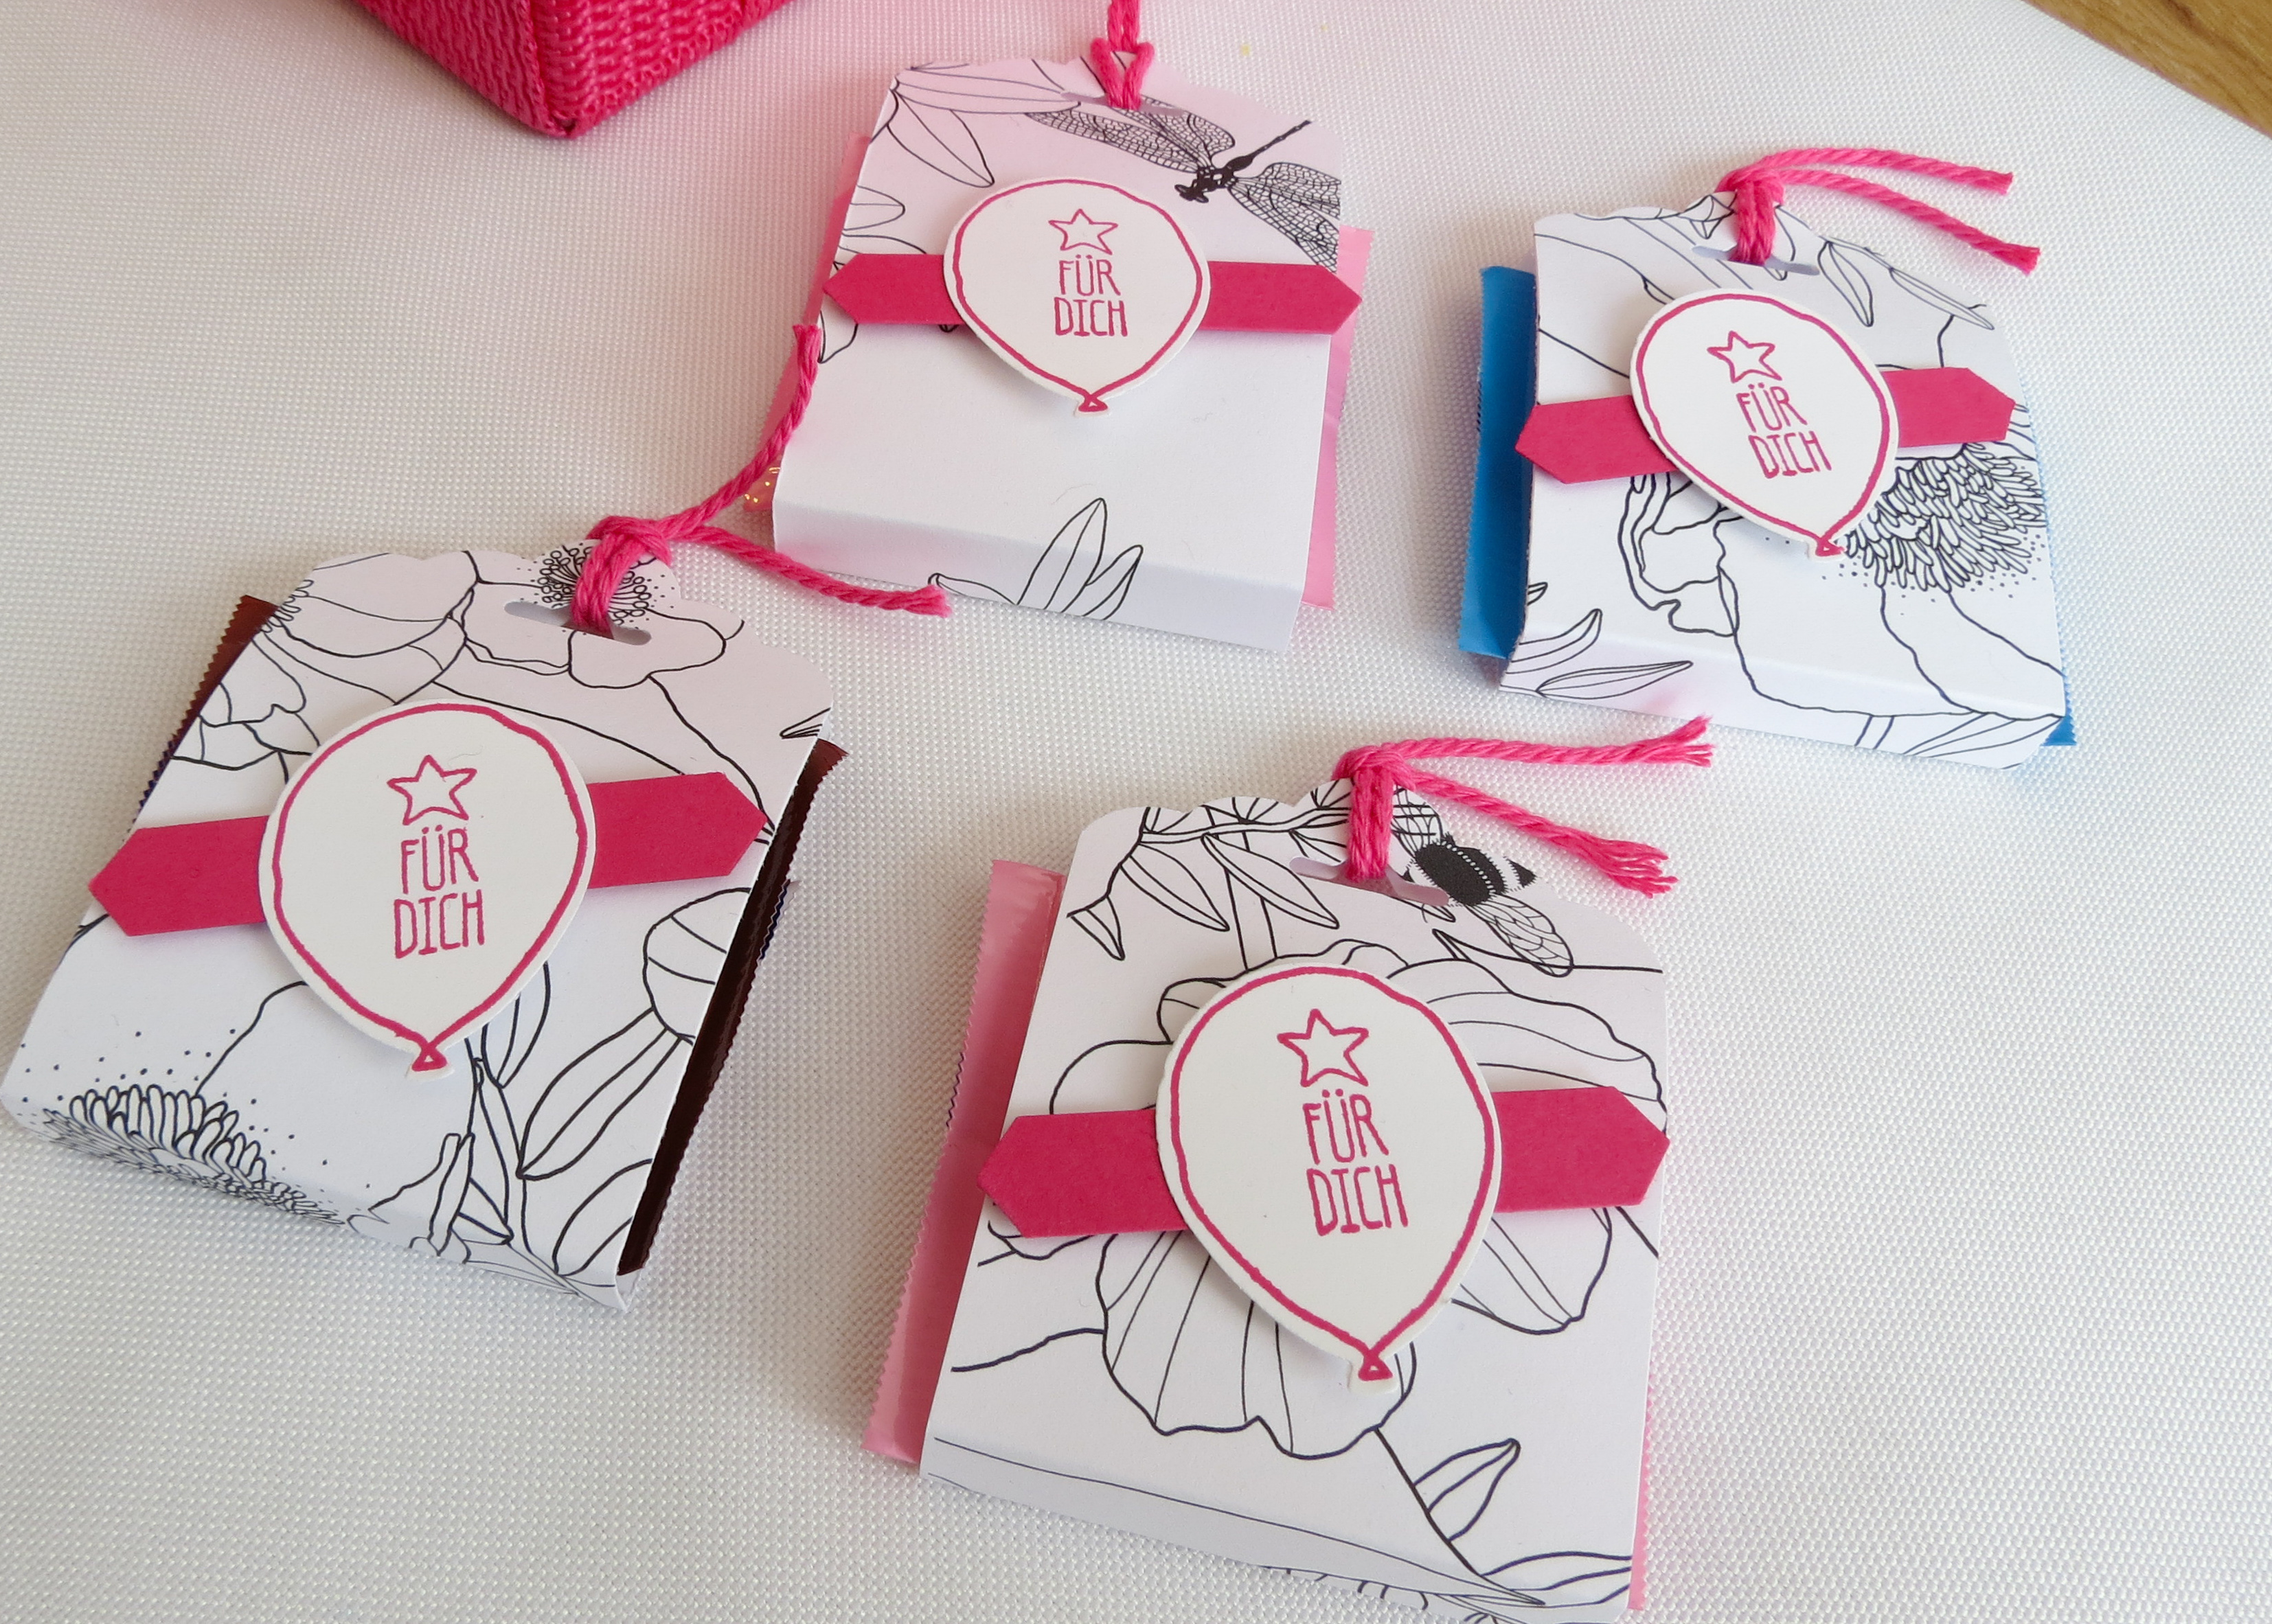 Diy Gastgeschenke Stampin Up Berlin Workshop Diy Gastgeschenke Goodies Rittersport